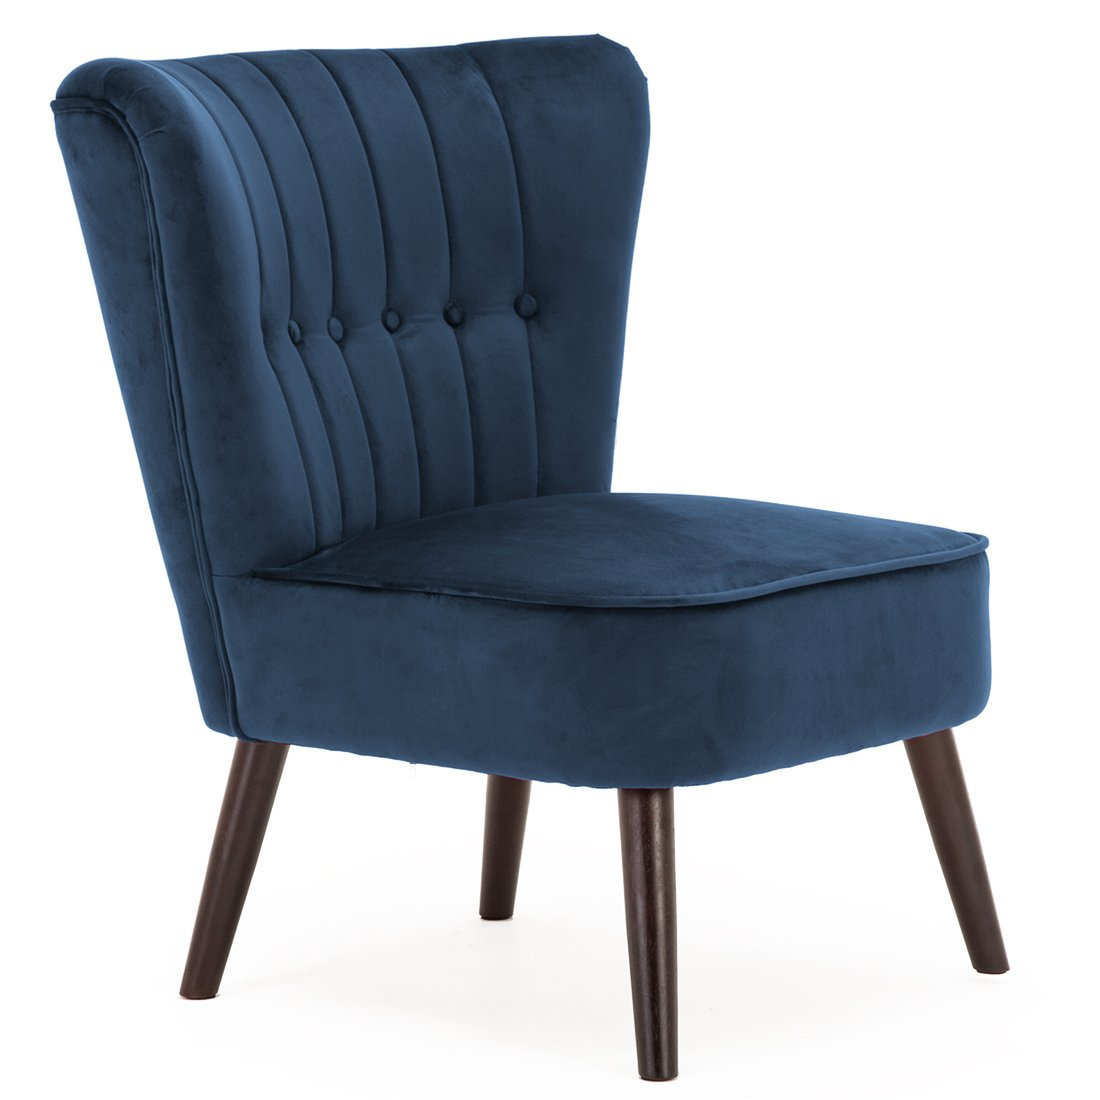 ELINE VELVET BUTTON BACK RETRO OCCASIONAL BEDROOM LIVING ROOM FABRIC ACCENT CHAIR (Midnight Blue) Cosy Chair